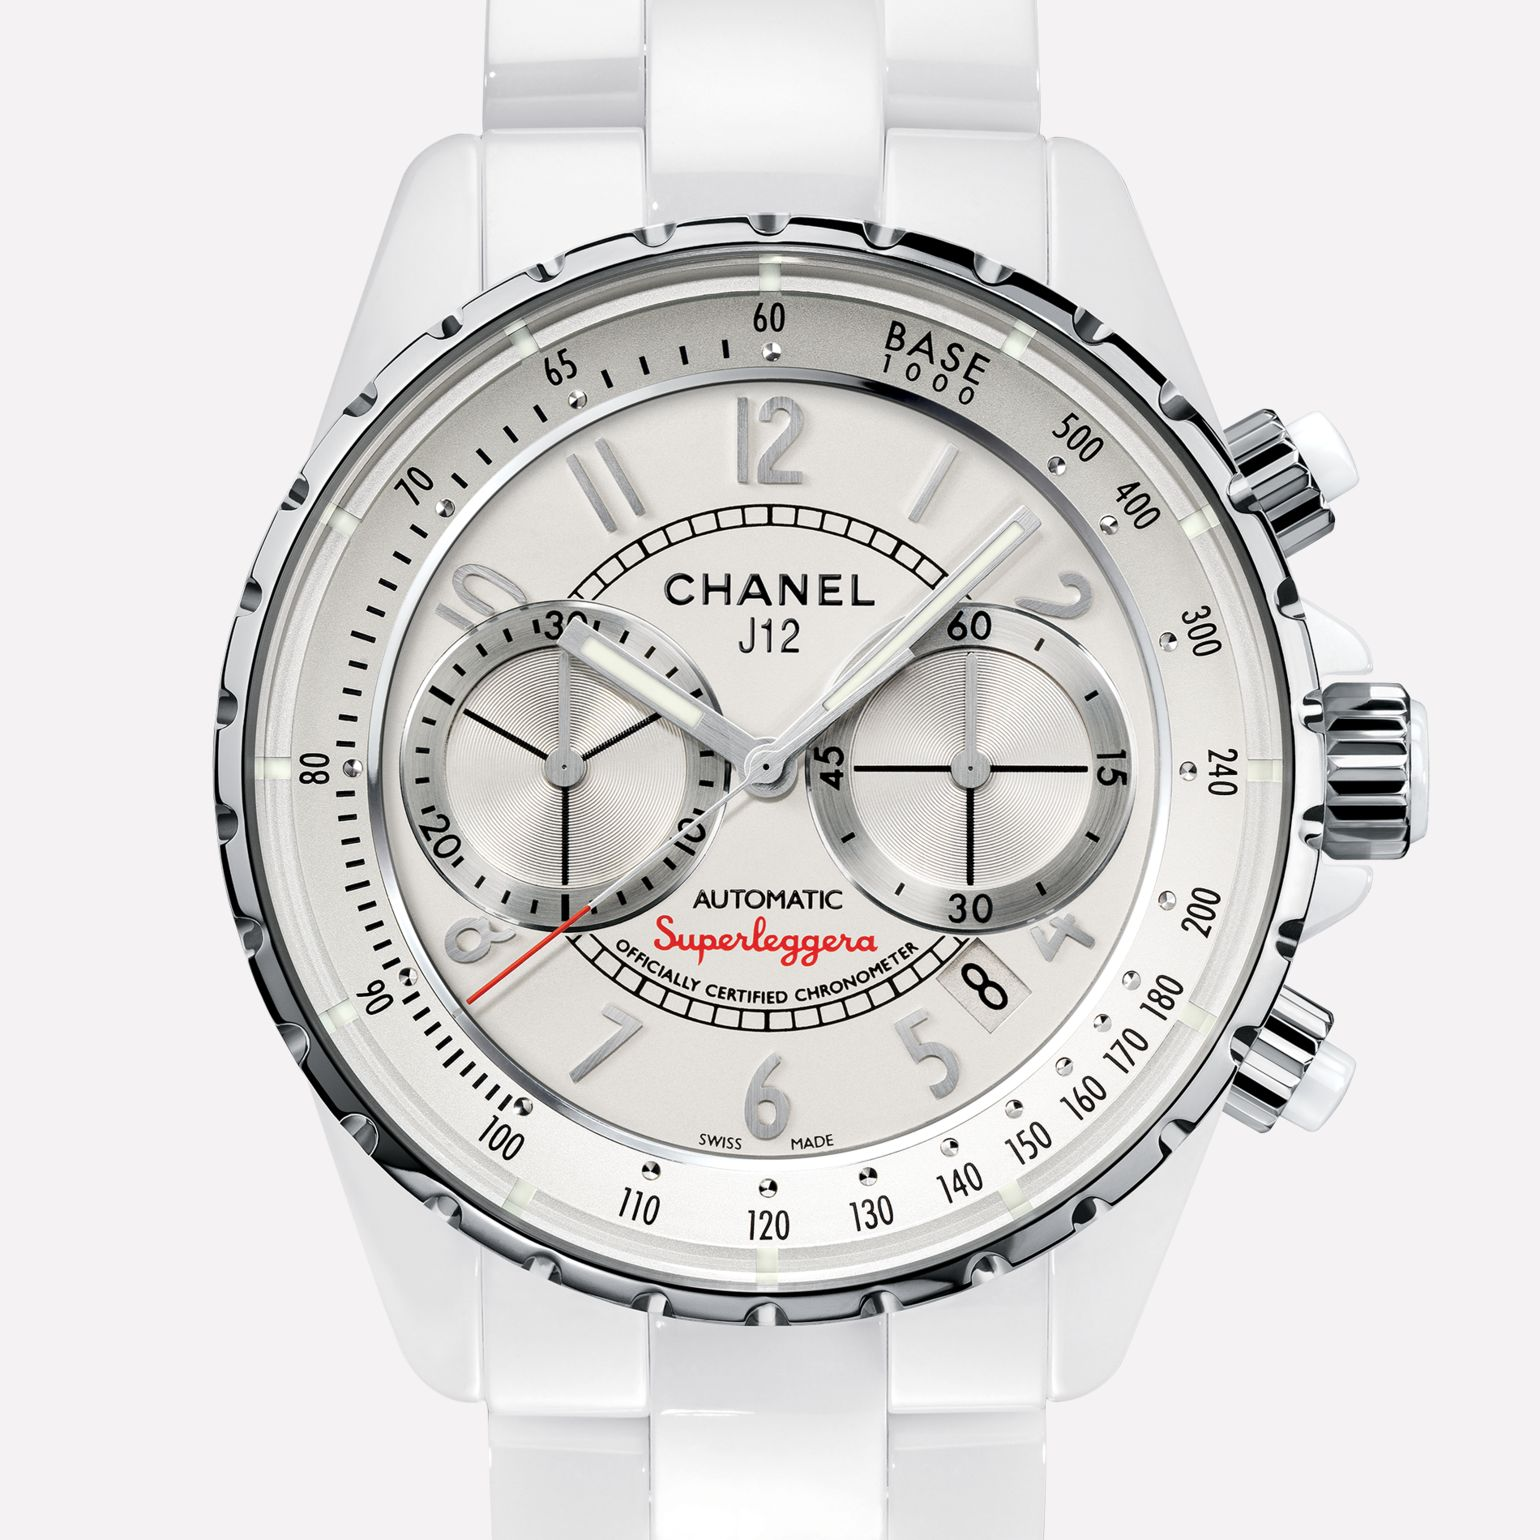 J12 SUPERLEGGERA CHRONOGRAPH White ceramic and steel